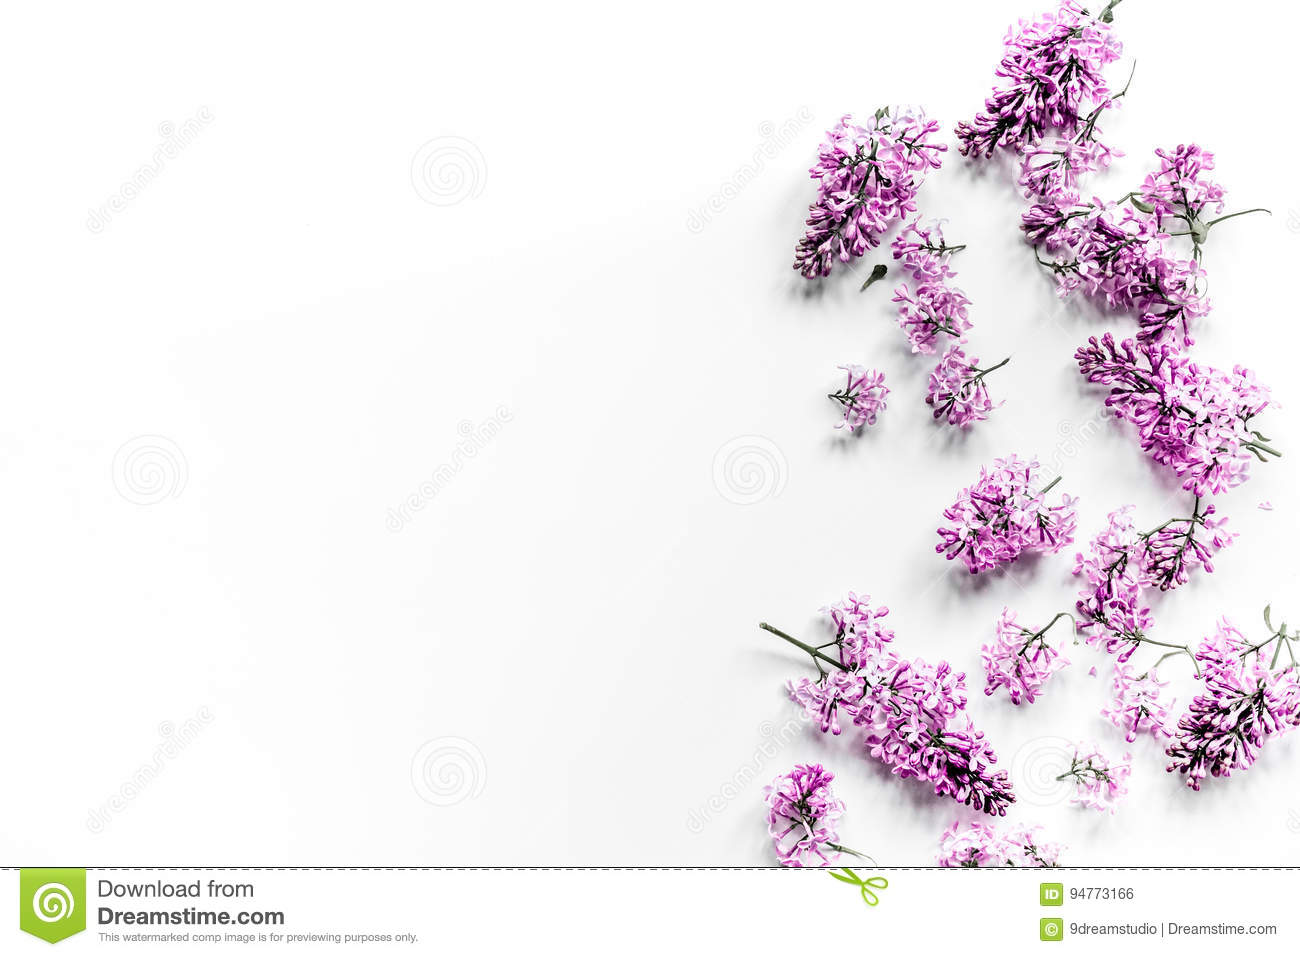 Spring lilac flowers on workdesk female home office white background top view mockup